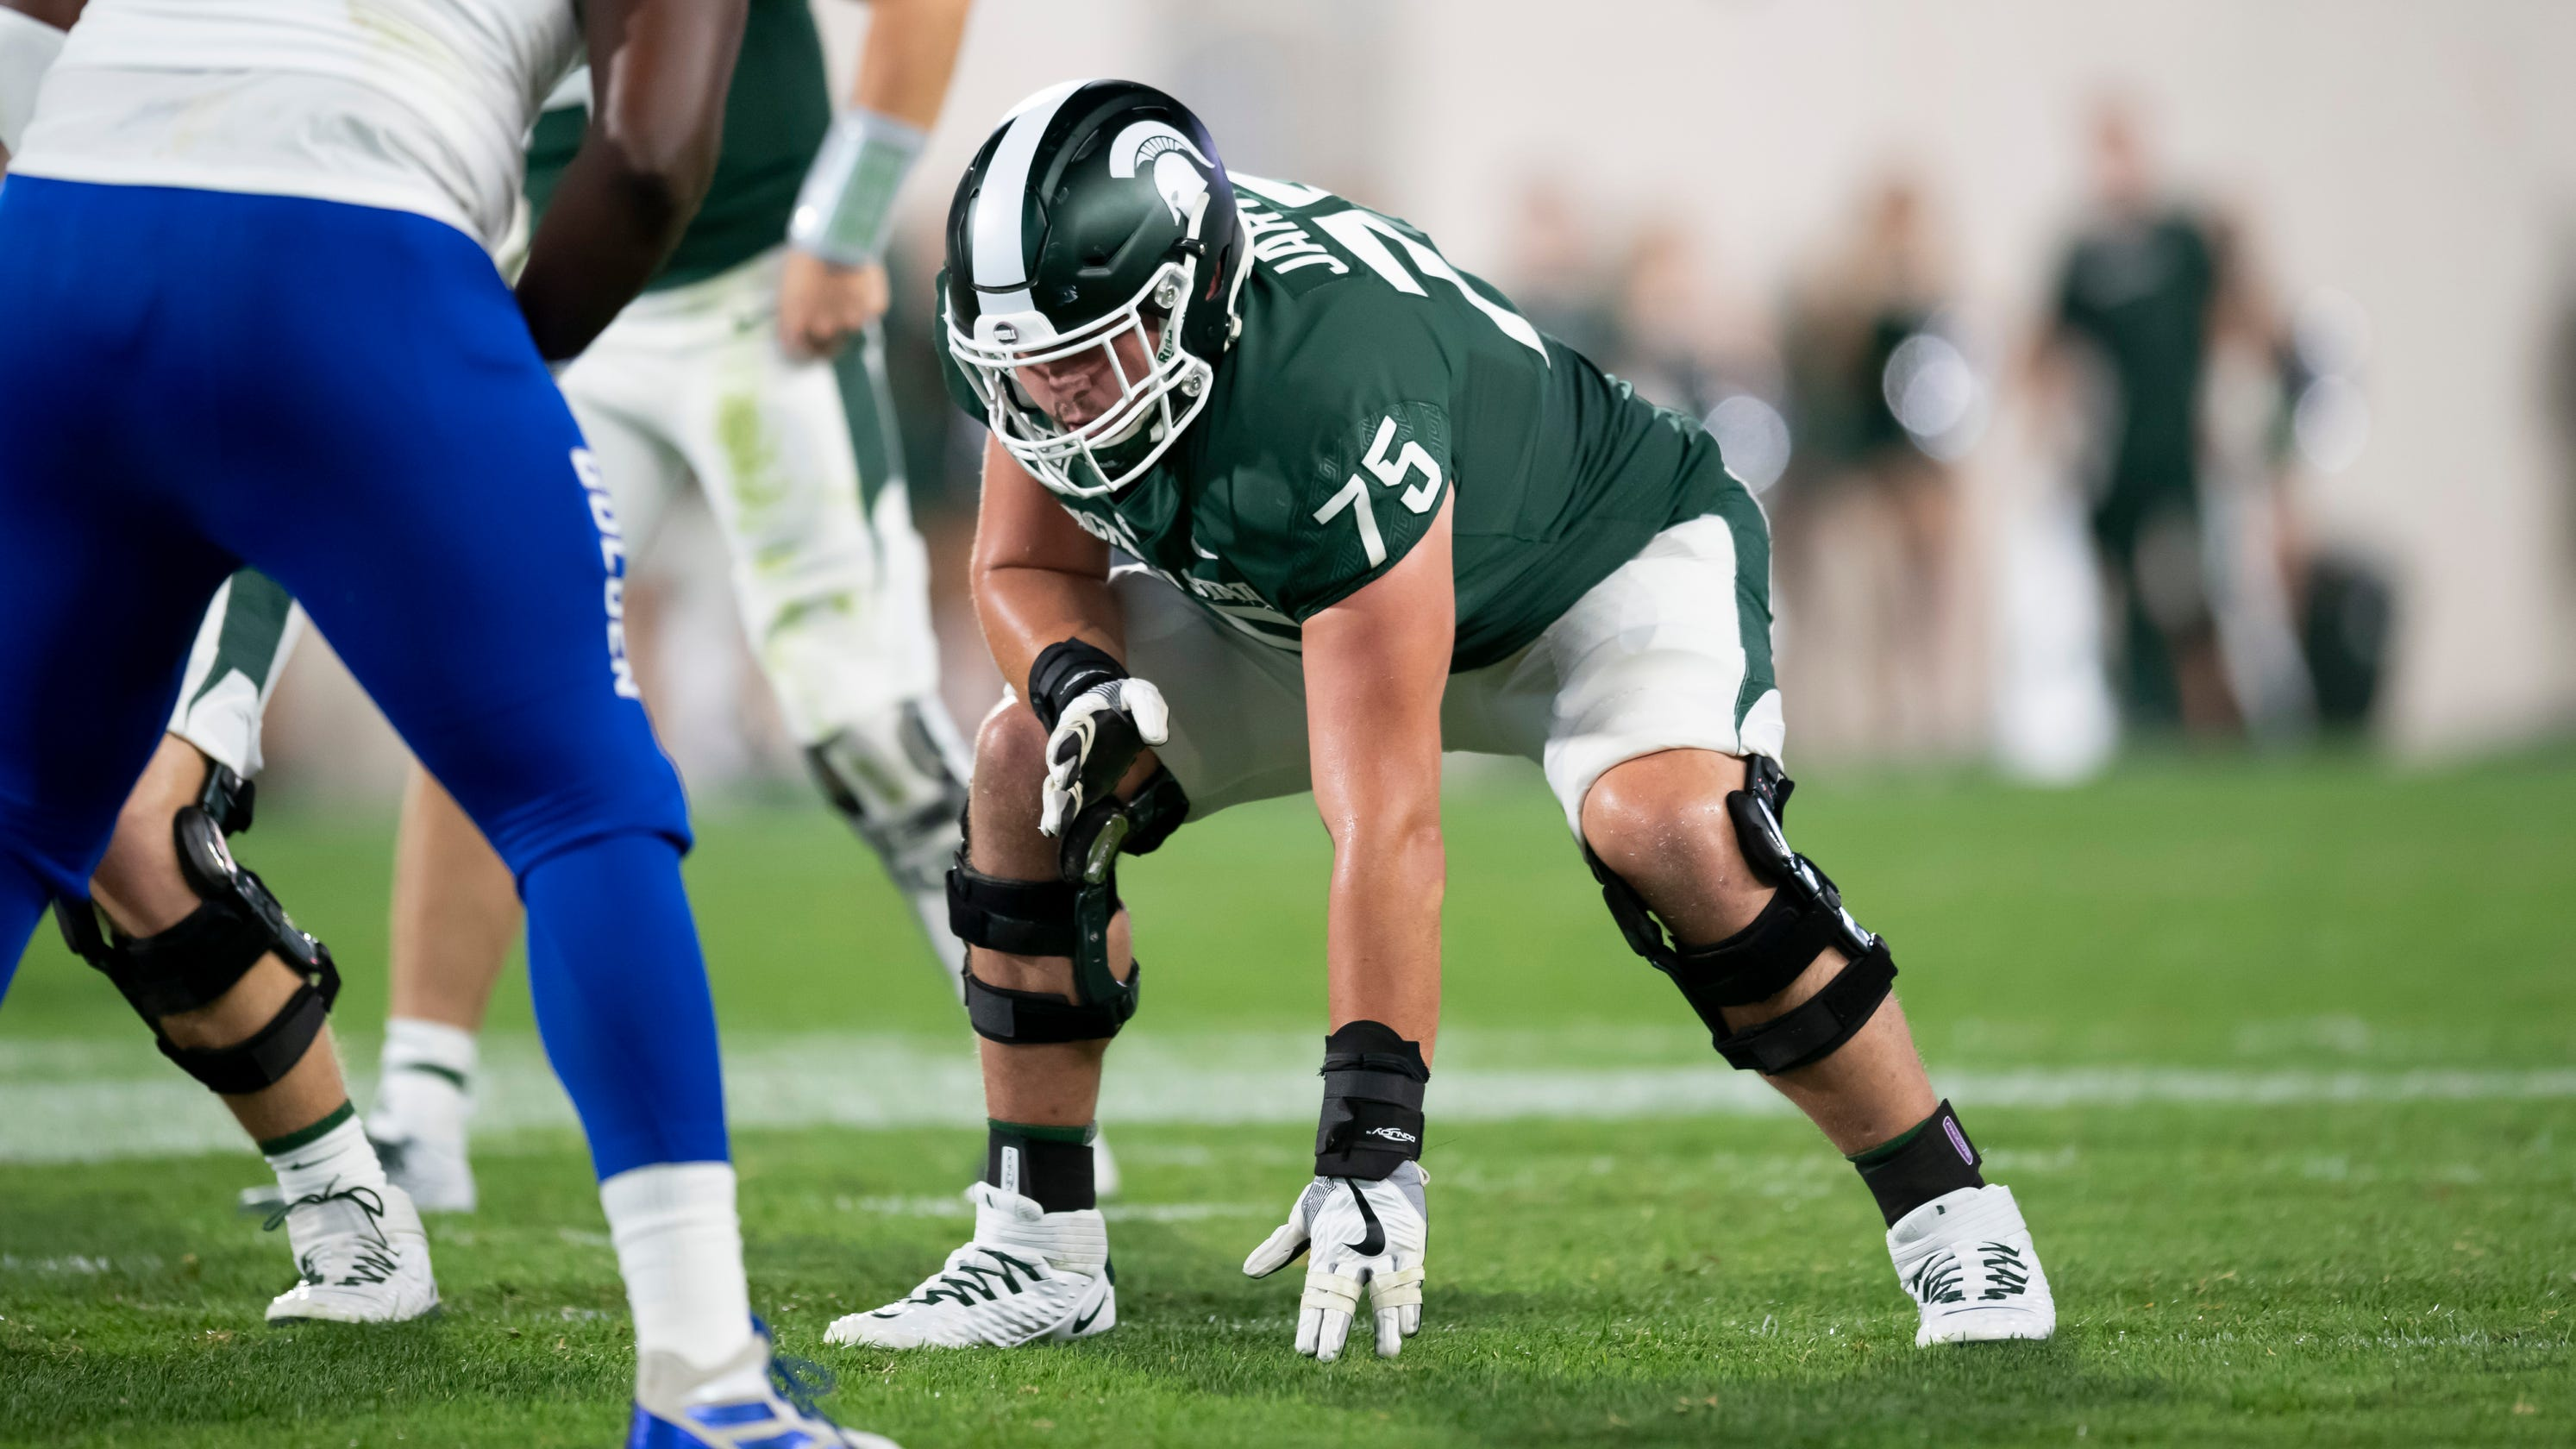 Michigan State Spartans' Kevin Jarvis to miss 6-7 weeks ...